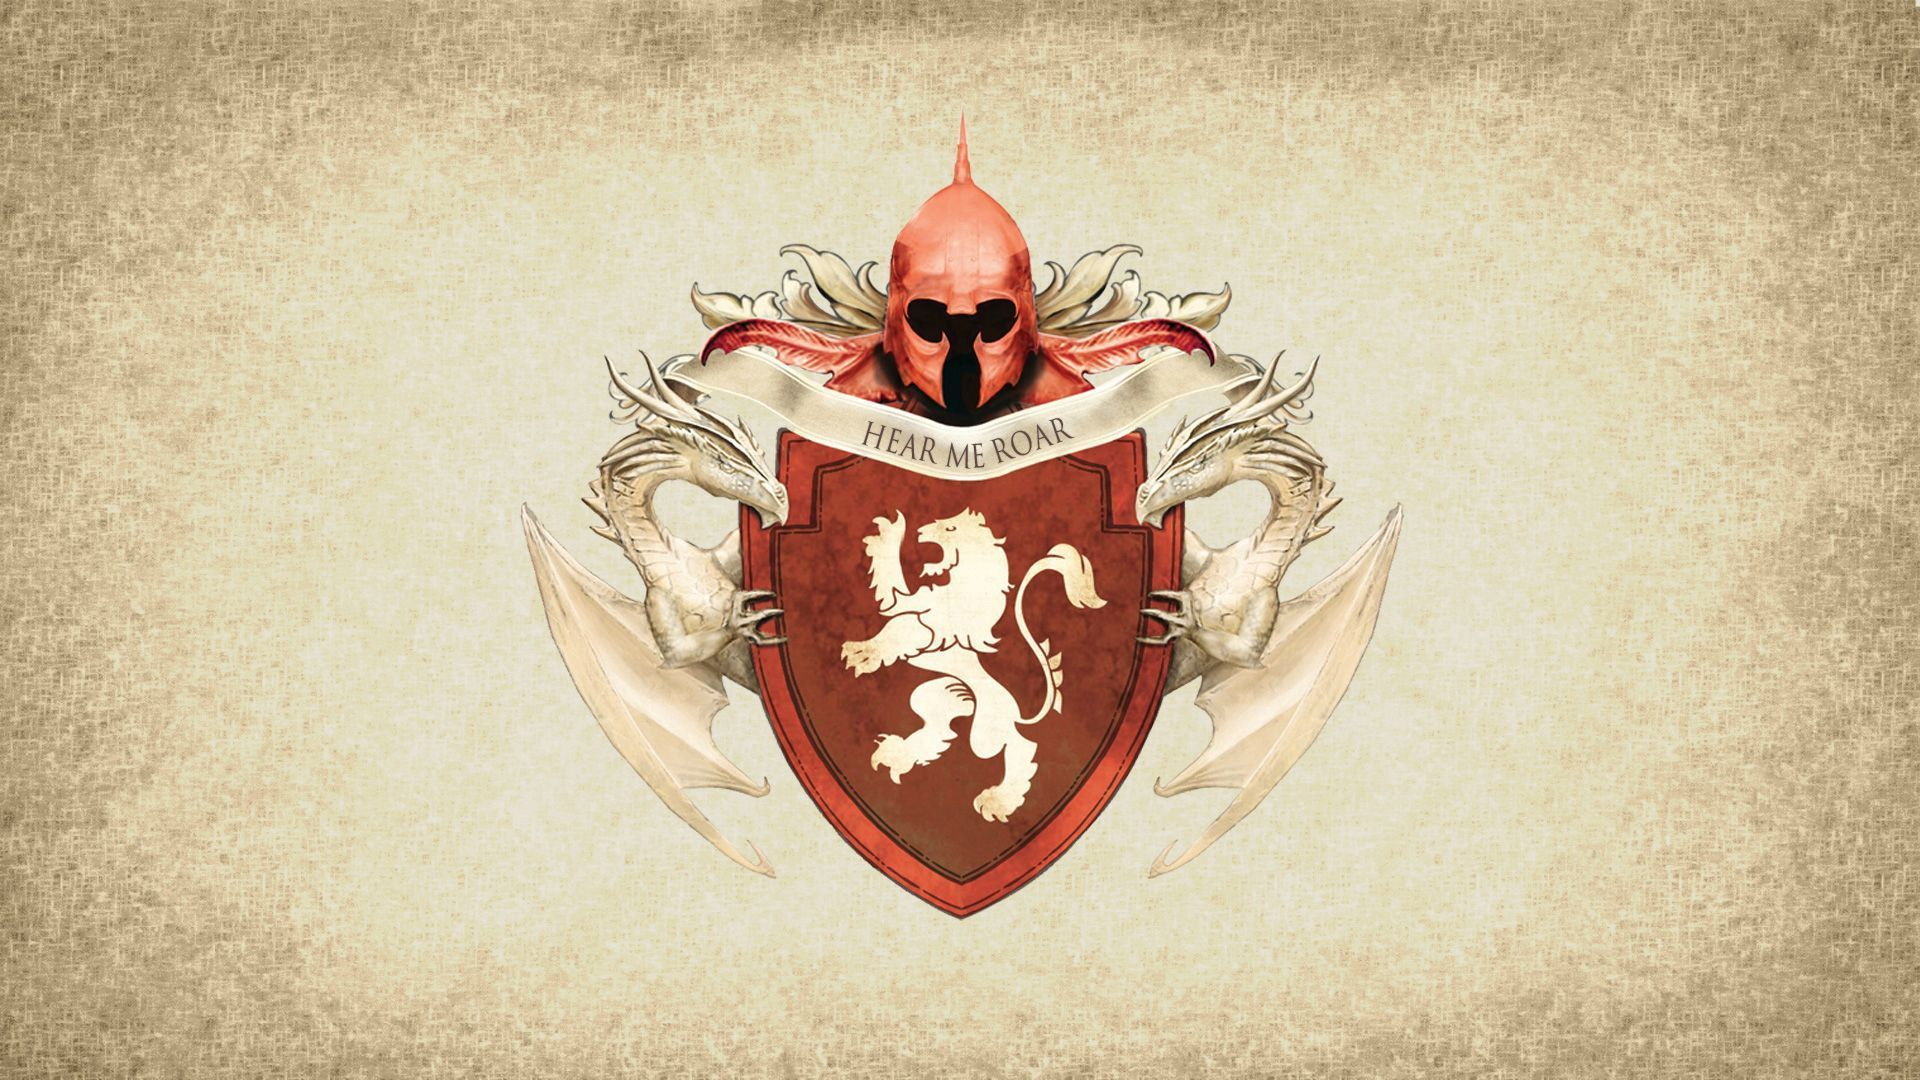 Game Of Thrones House Sigils In The German Style Game Of Thrones